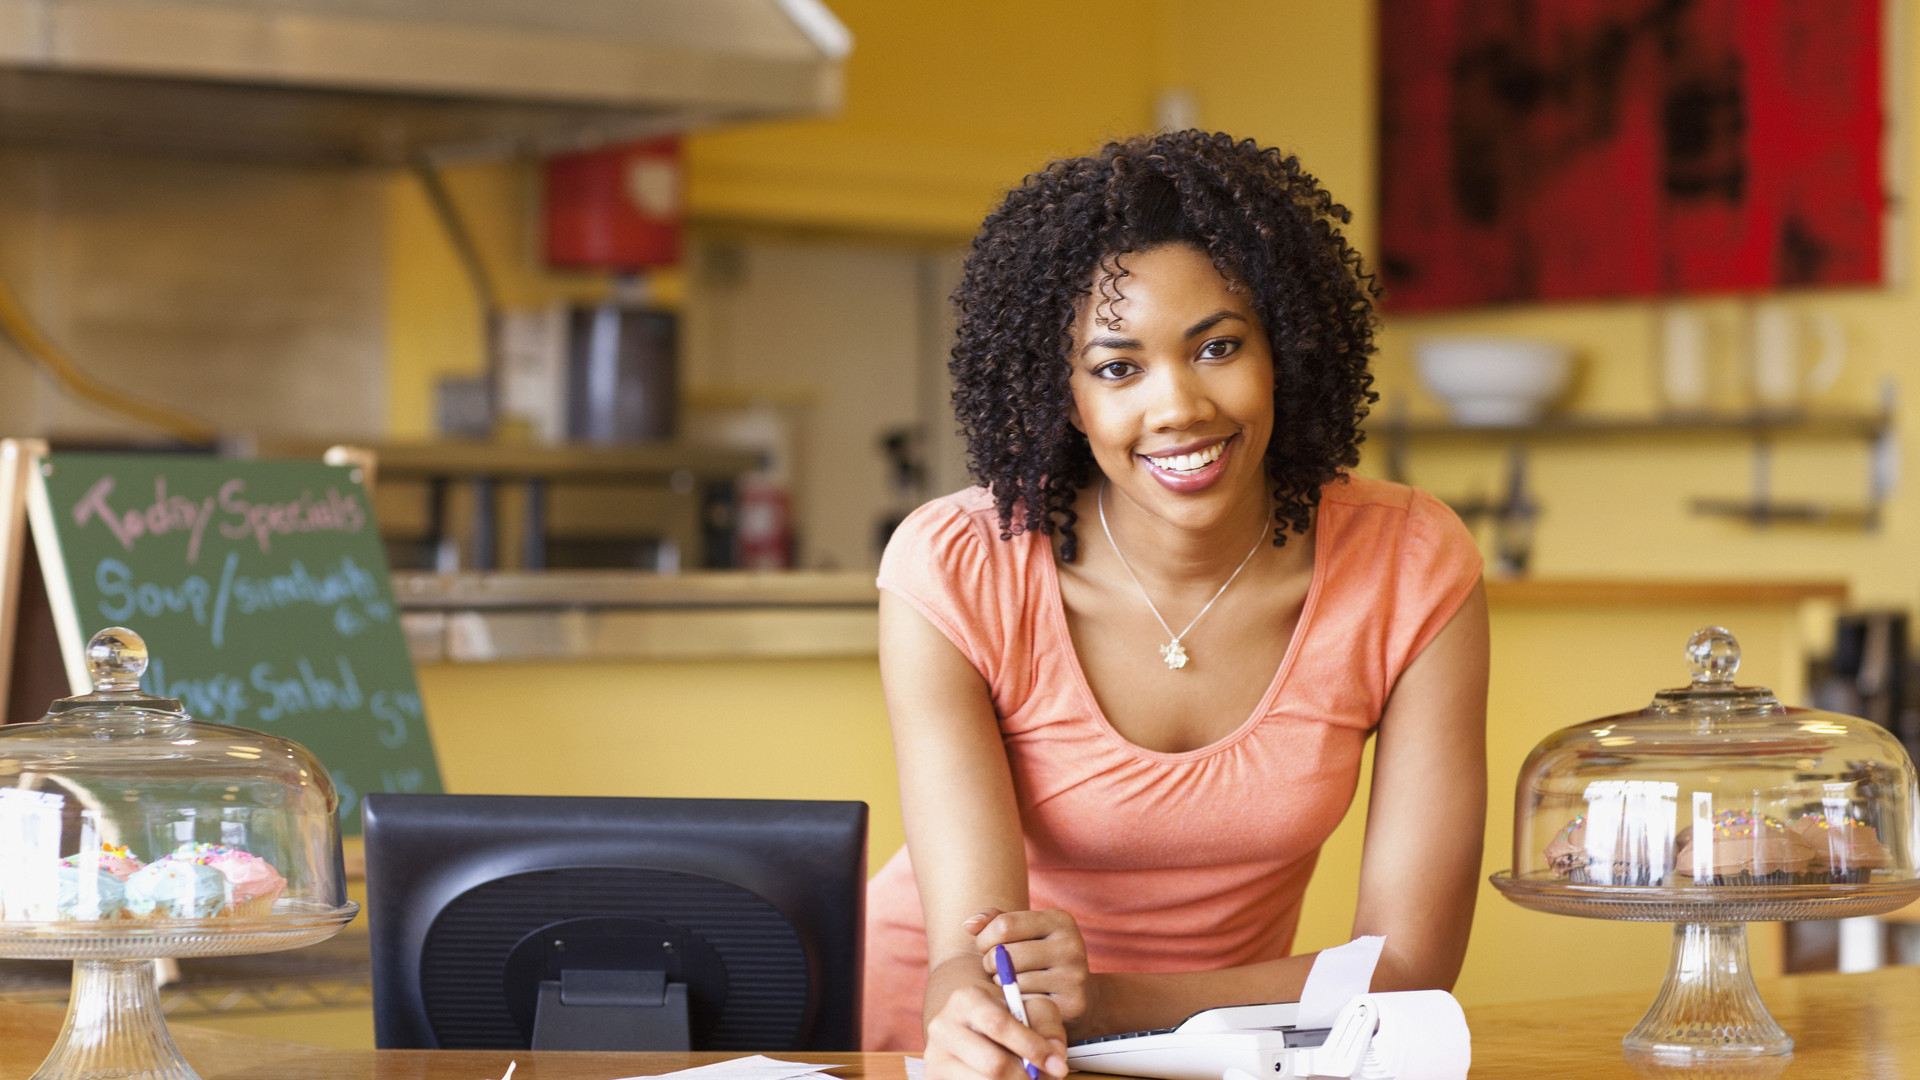 African American business owner paying bills at cafe counter